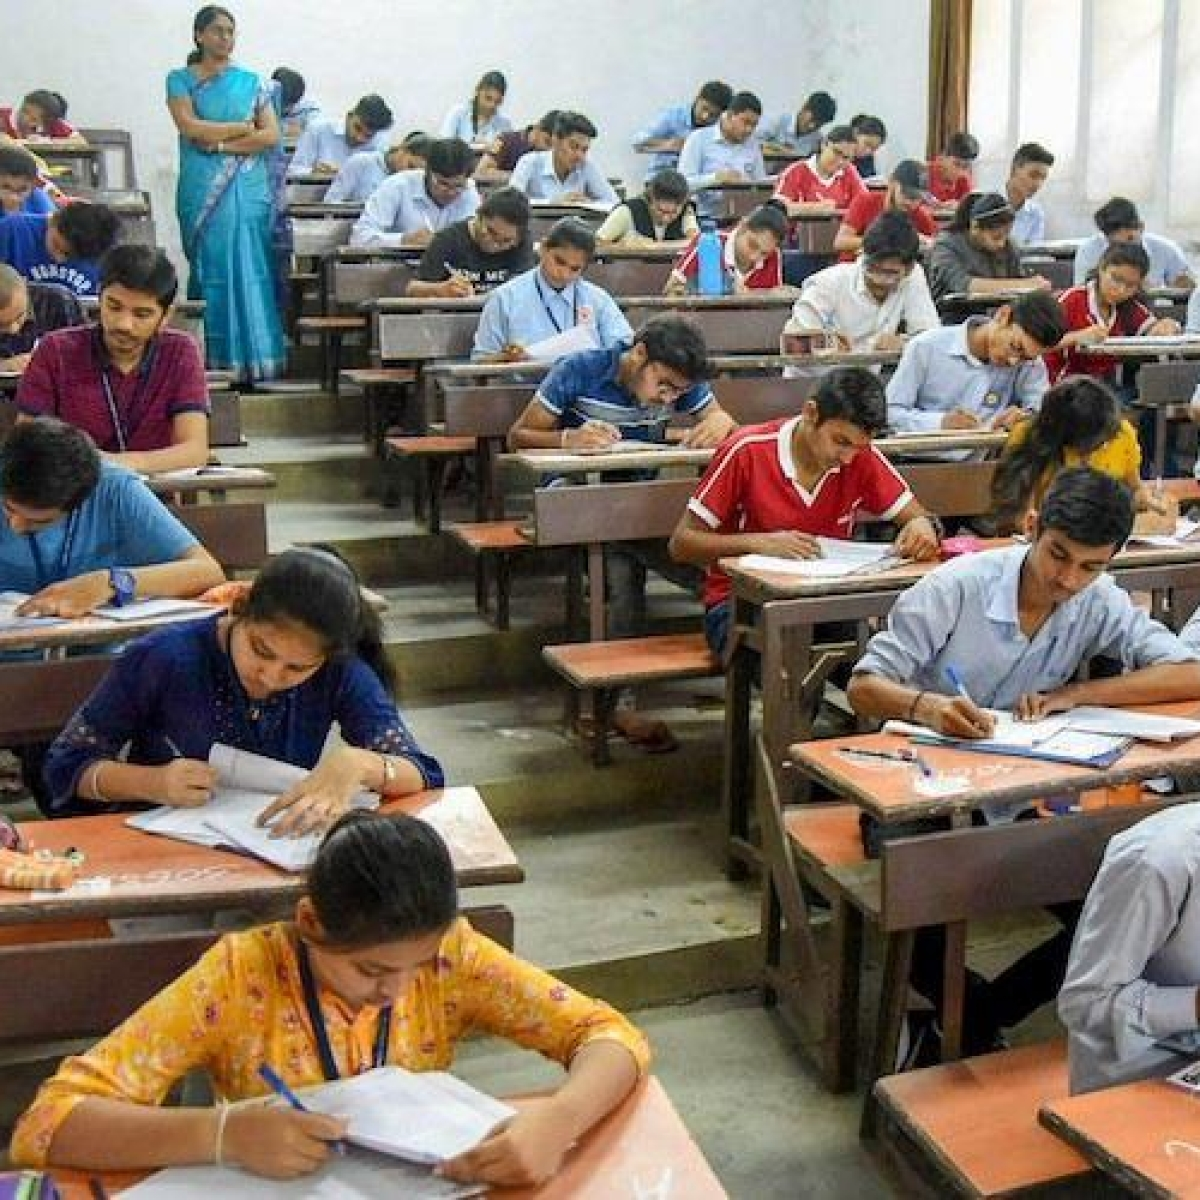 Full schedule of Mumbai University final exams including BCom, BA, Ph.D., BSc from July 1 to July 31